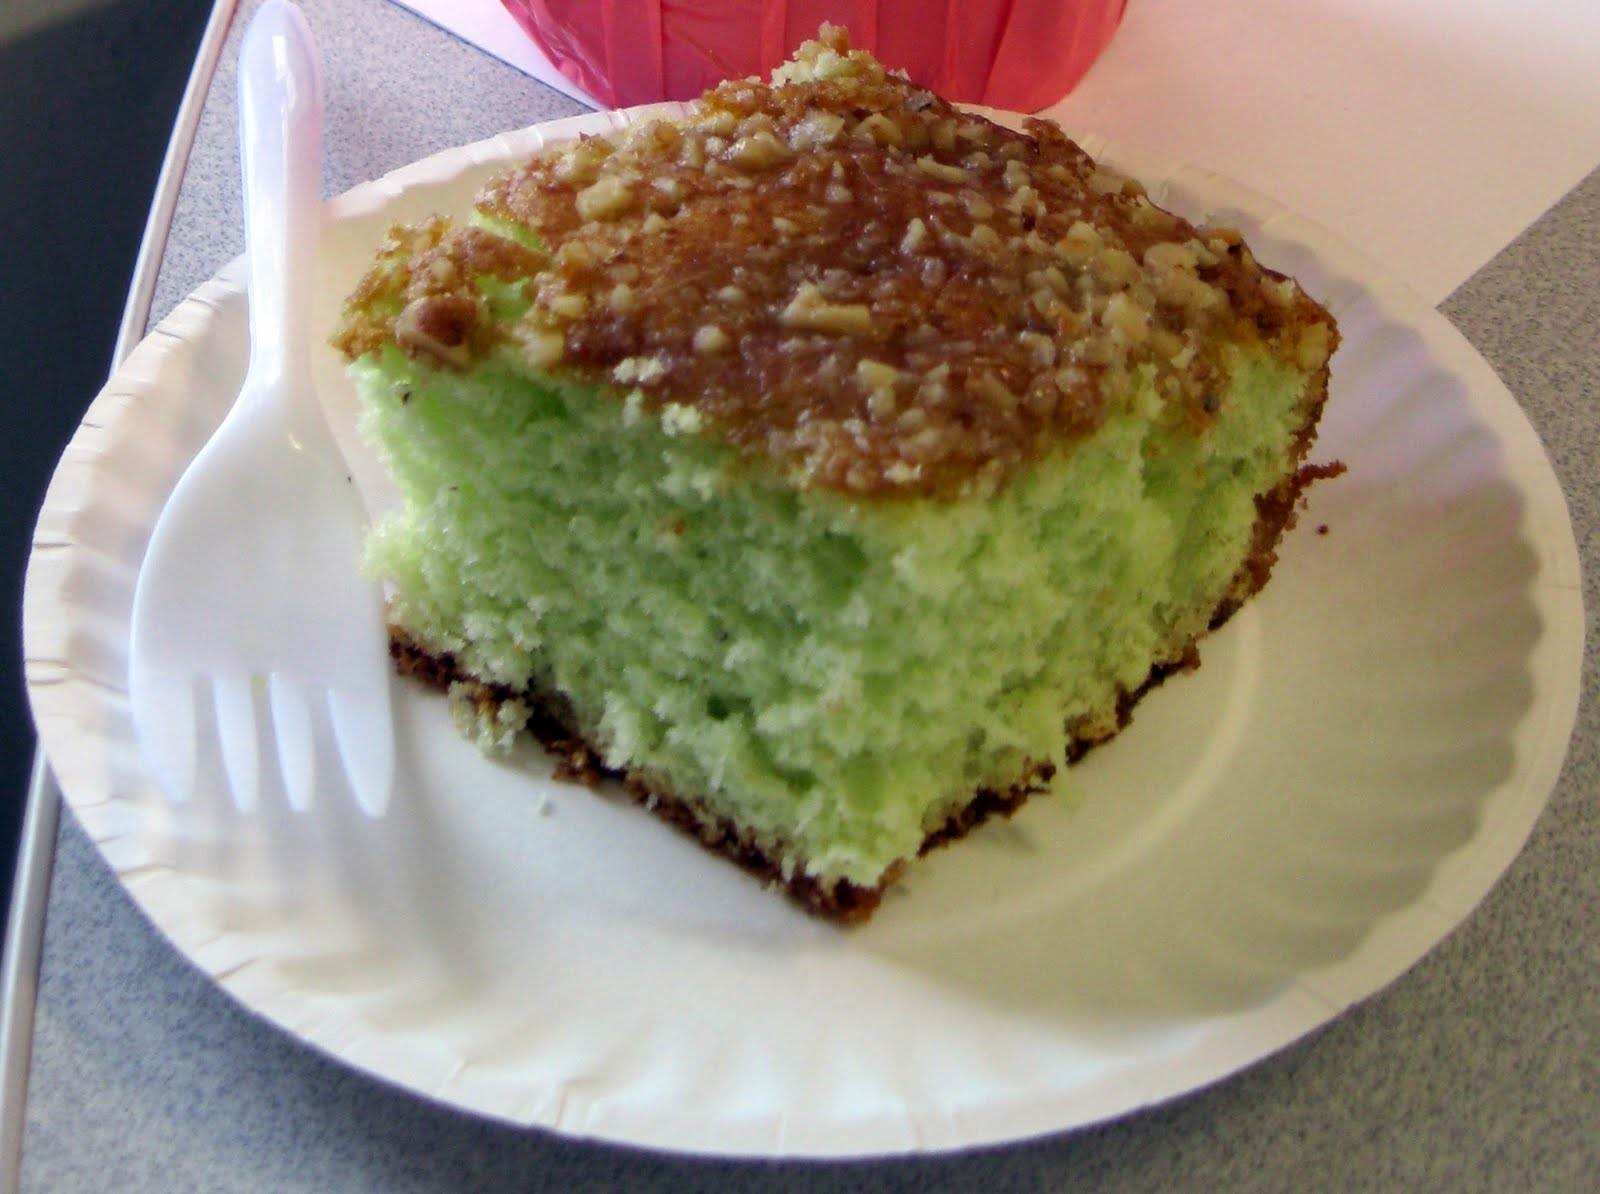 Adirondack Baker: Office Food and Pistachio Cake